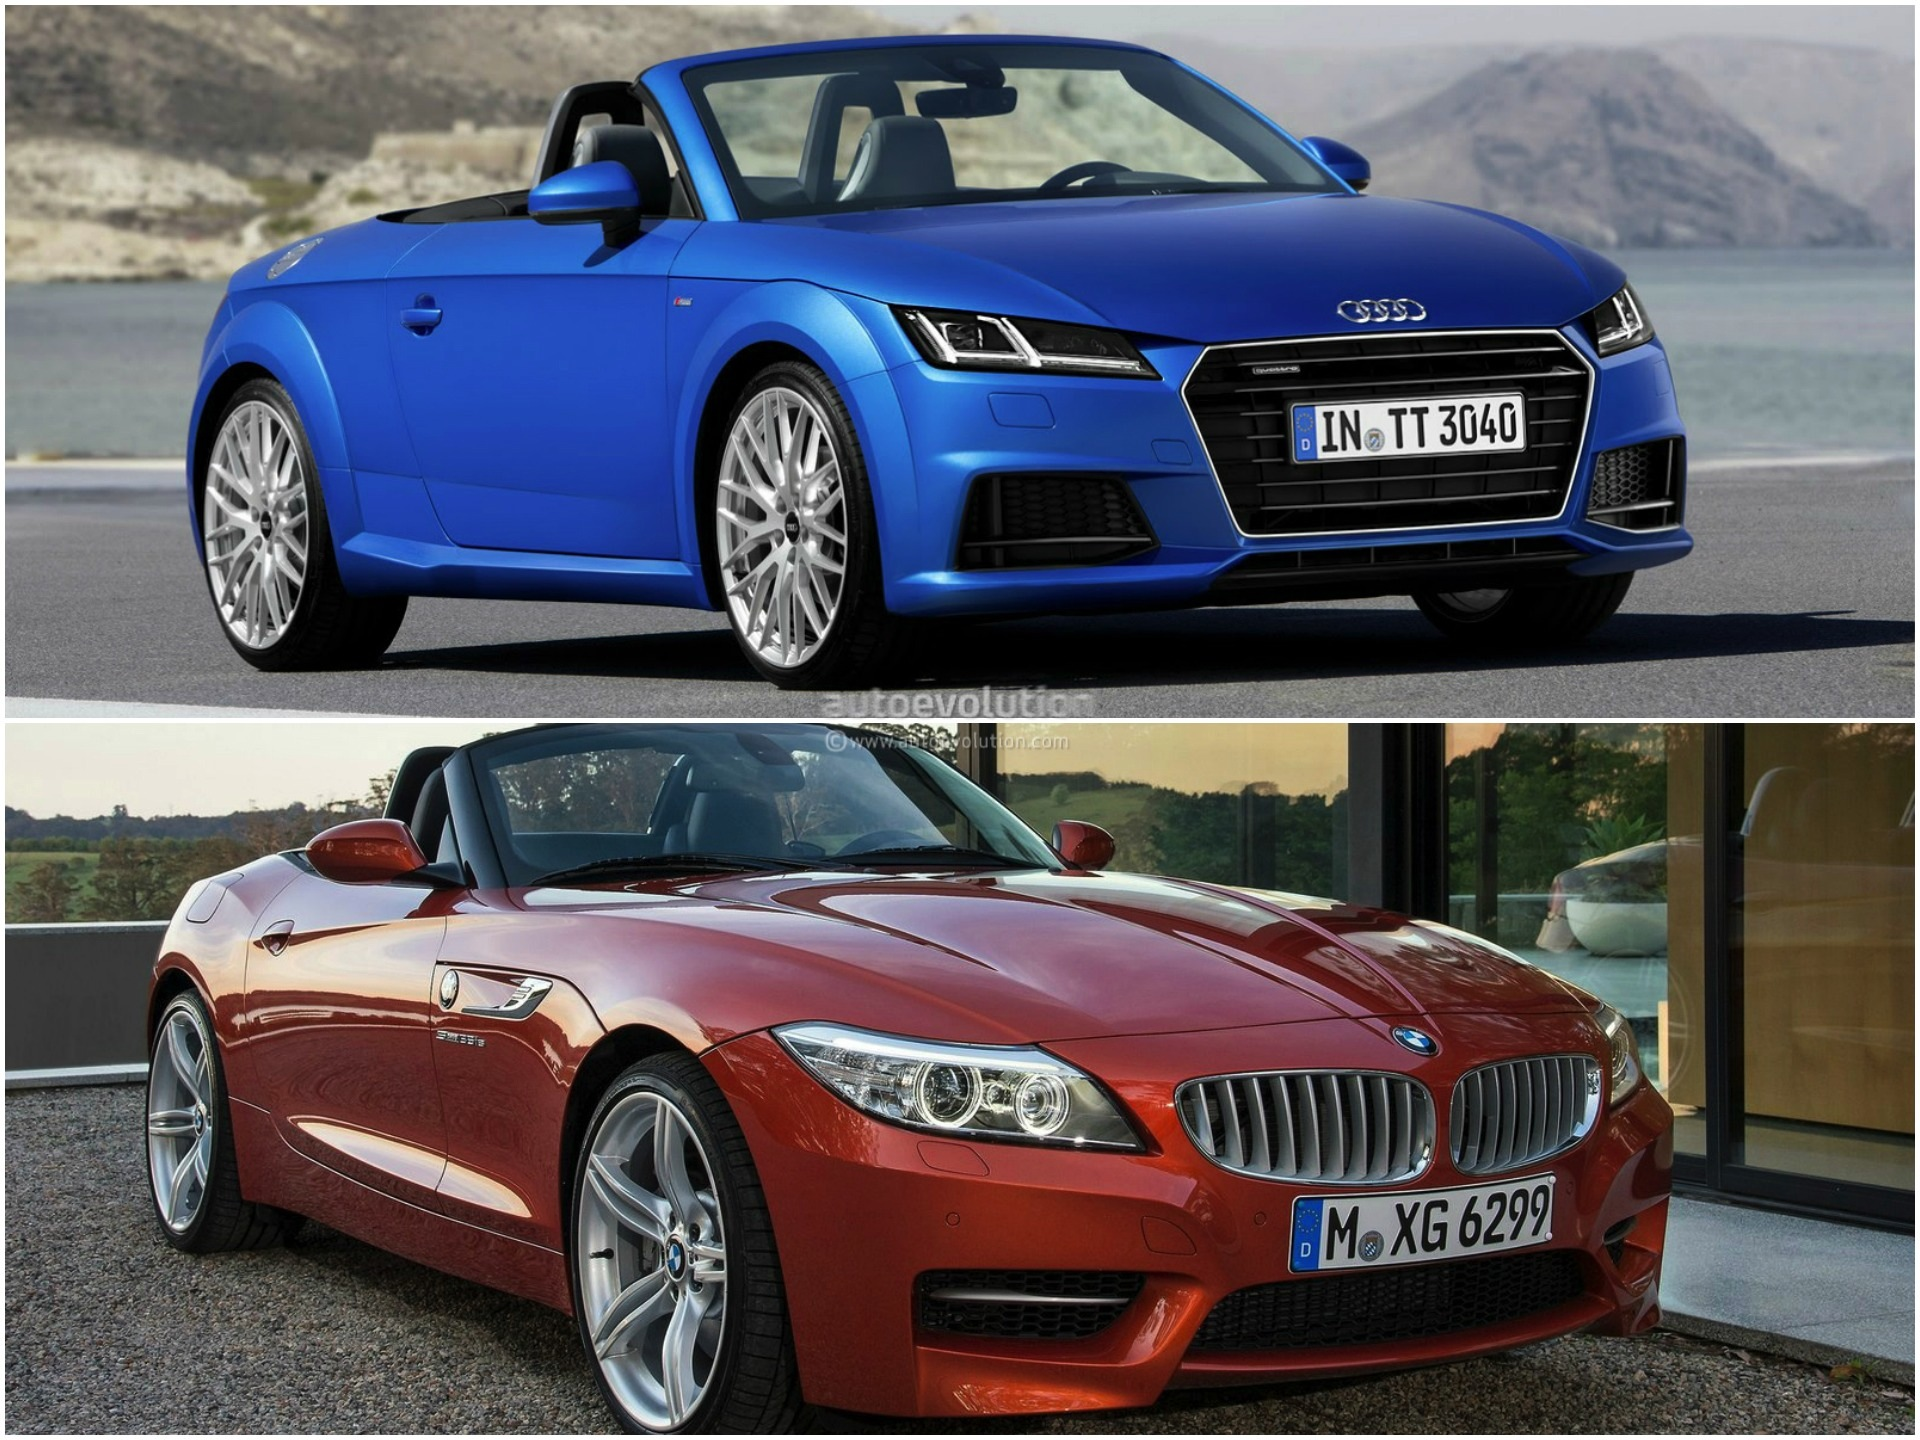 2014 bmw z4 vs 2015 audi tt roadster